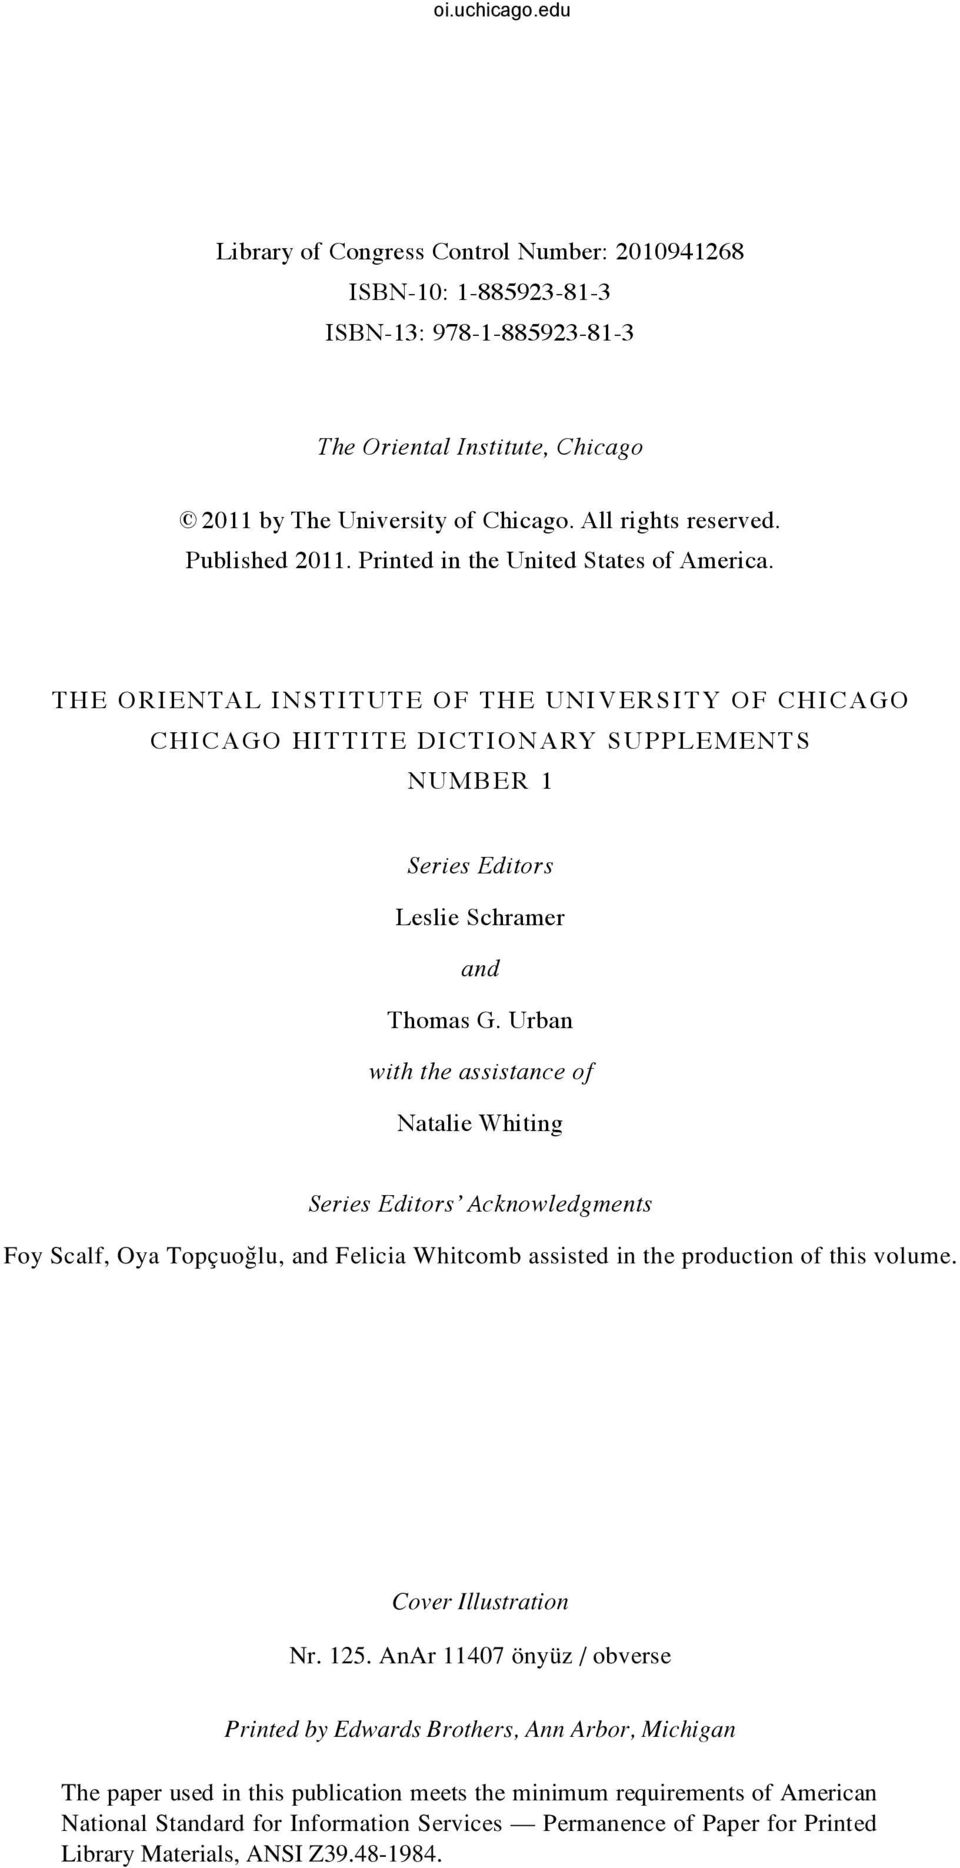 The Oriental Institute of The University of Chicago chicago hittite dictionary supplements Number 1 Series Editors Leslie Schramer and Thomas G.